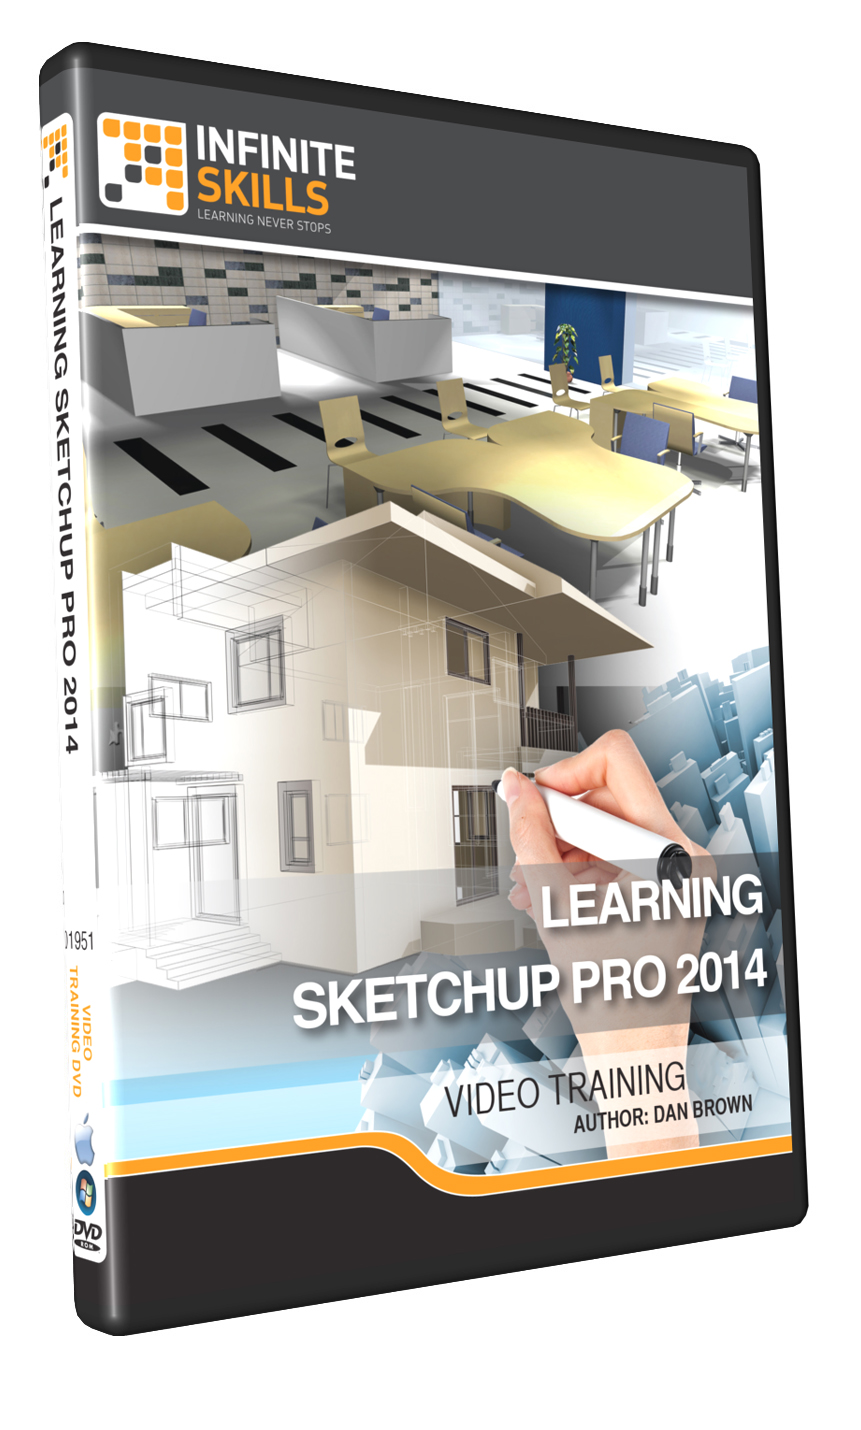 Infinite Skills - Learning Sketchup Software Prices